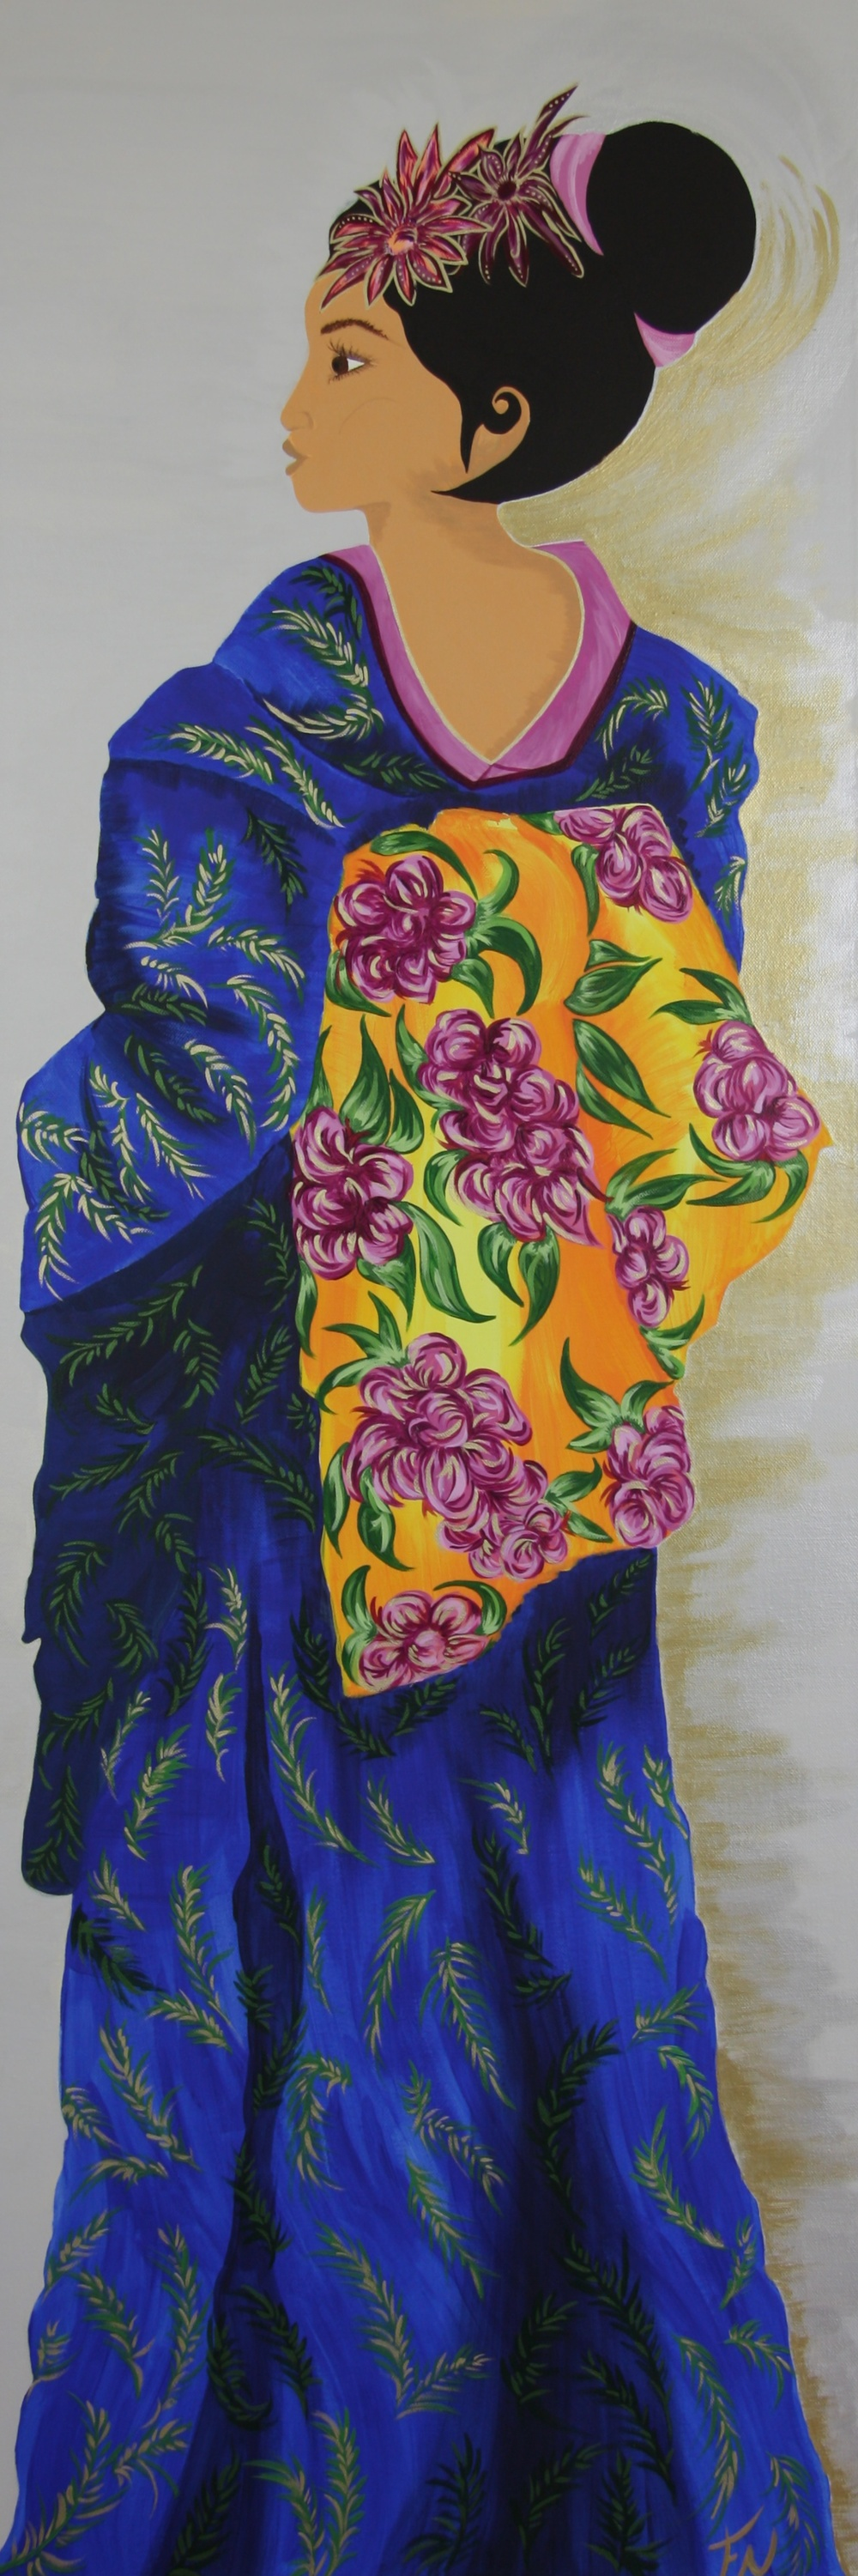 Chinese Girl 150x50cm Contact Feike for pricing info